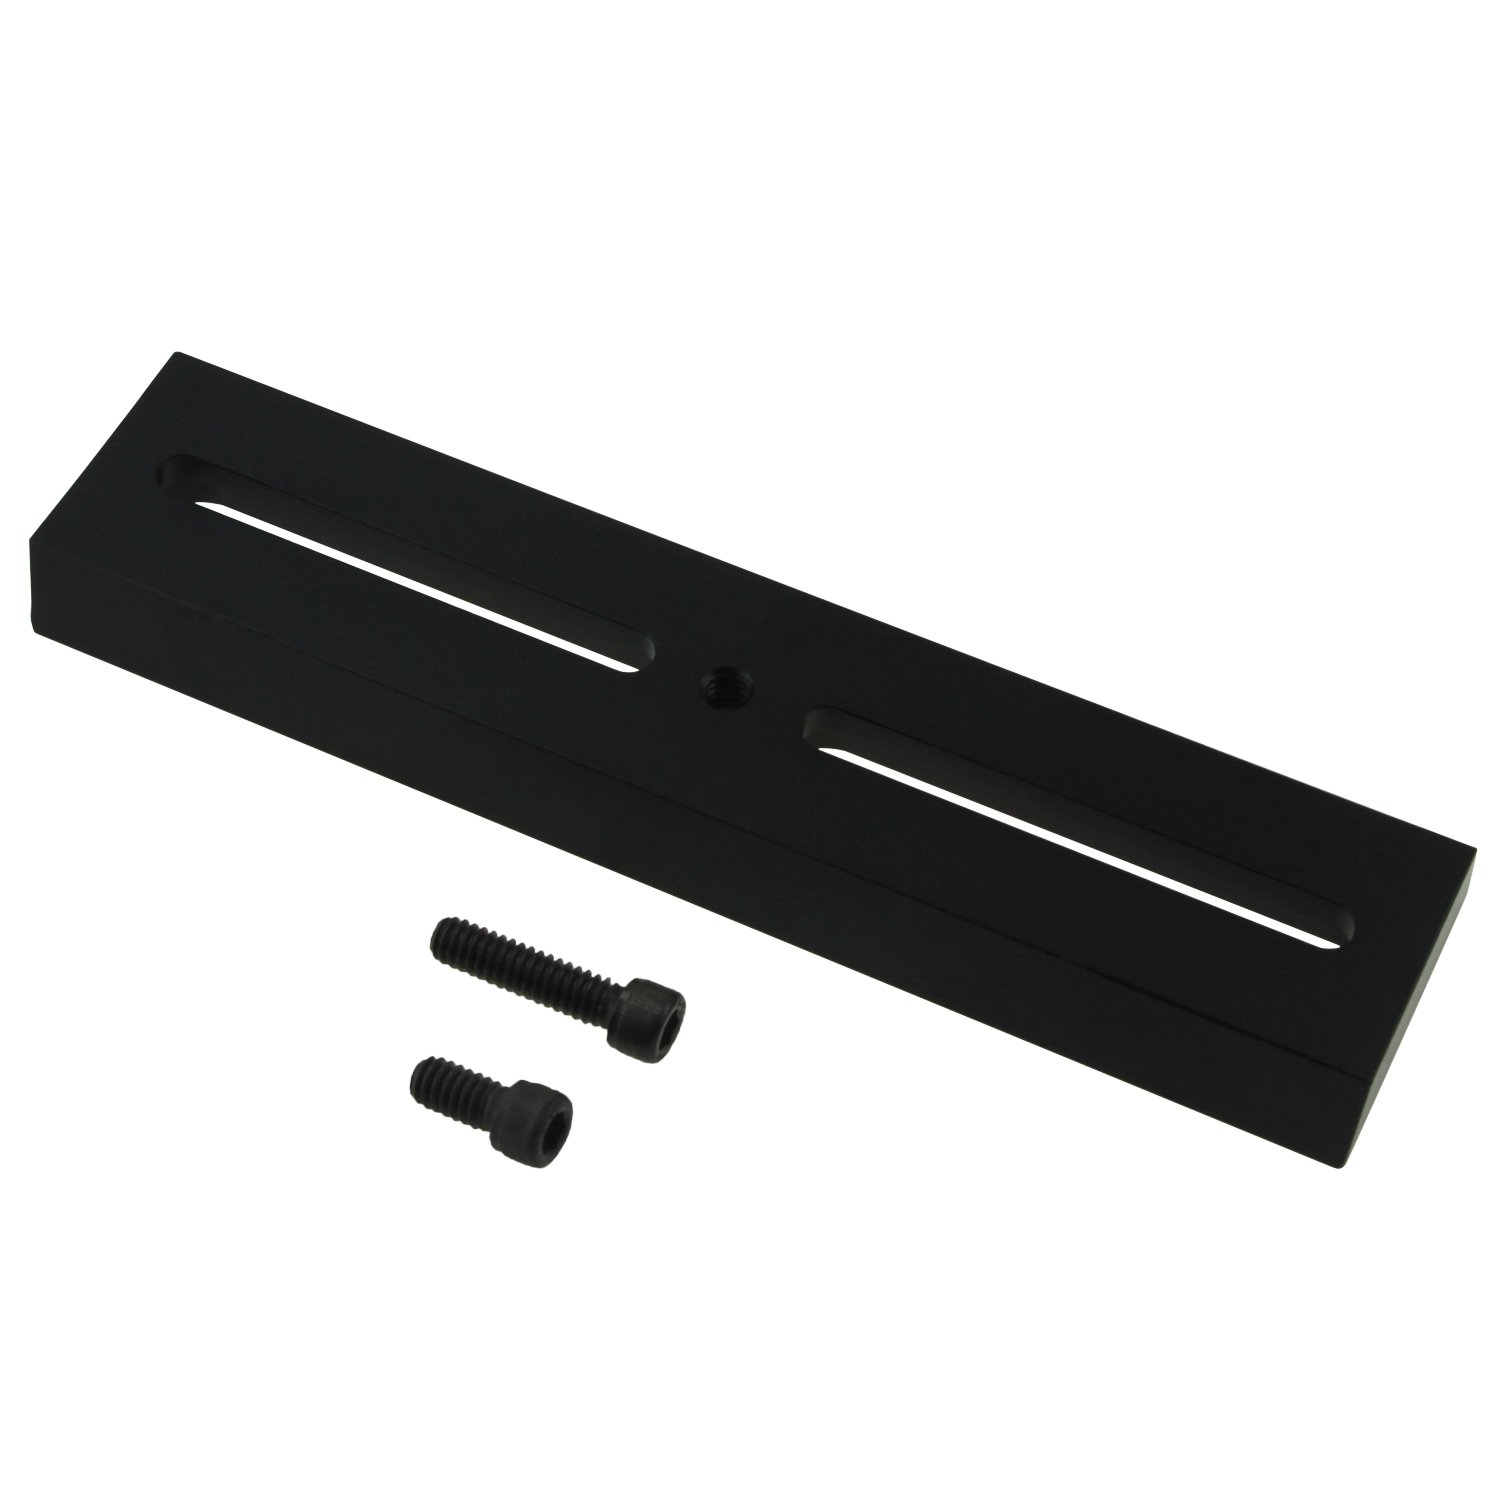 Astromania Improve Vixen Style Plate with 1/4''-20 Photo Thread - Length 180MM - used to connect cameras to astronomical mounts with Vixen/GP saddle plate